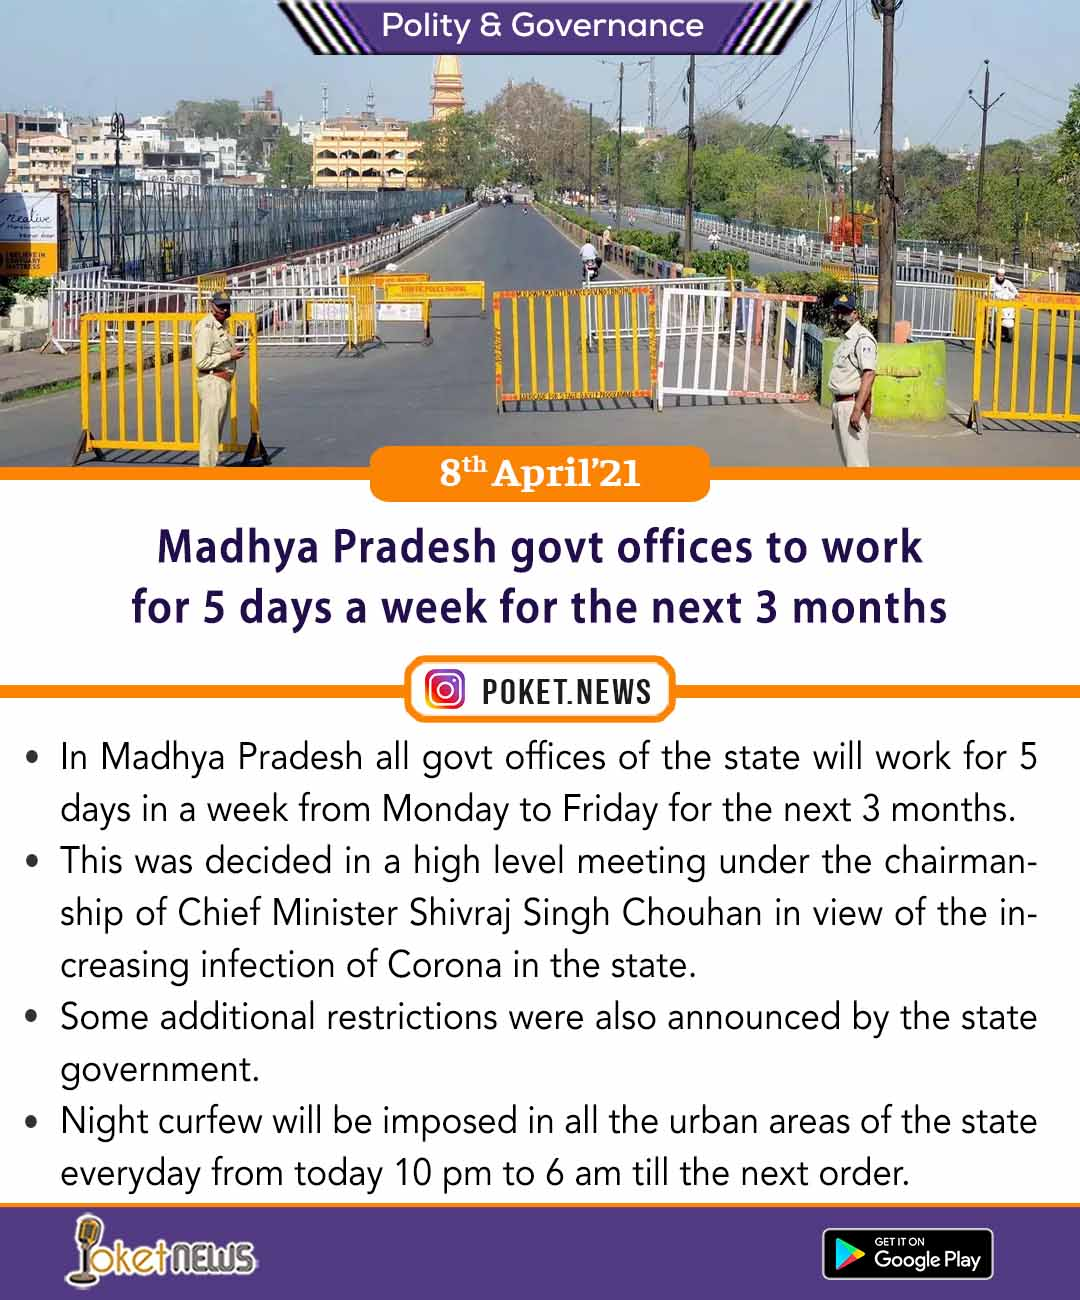 Madhya Pradesh govt offices to work for 5 days a week for the next 3 months